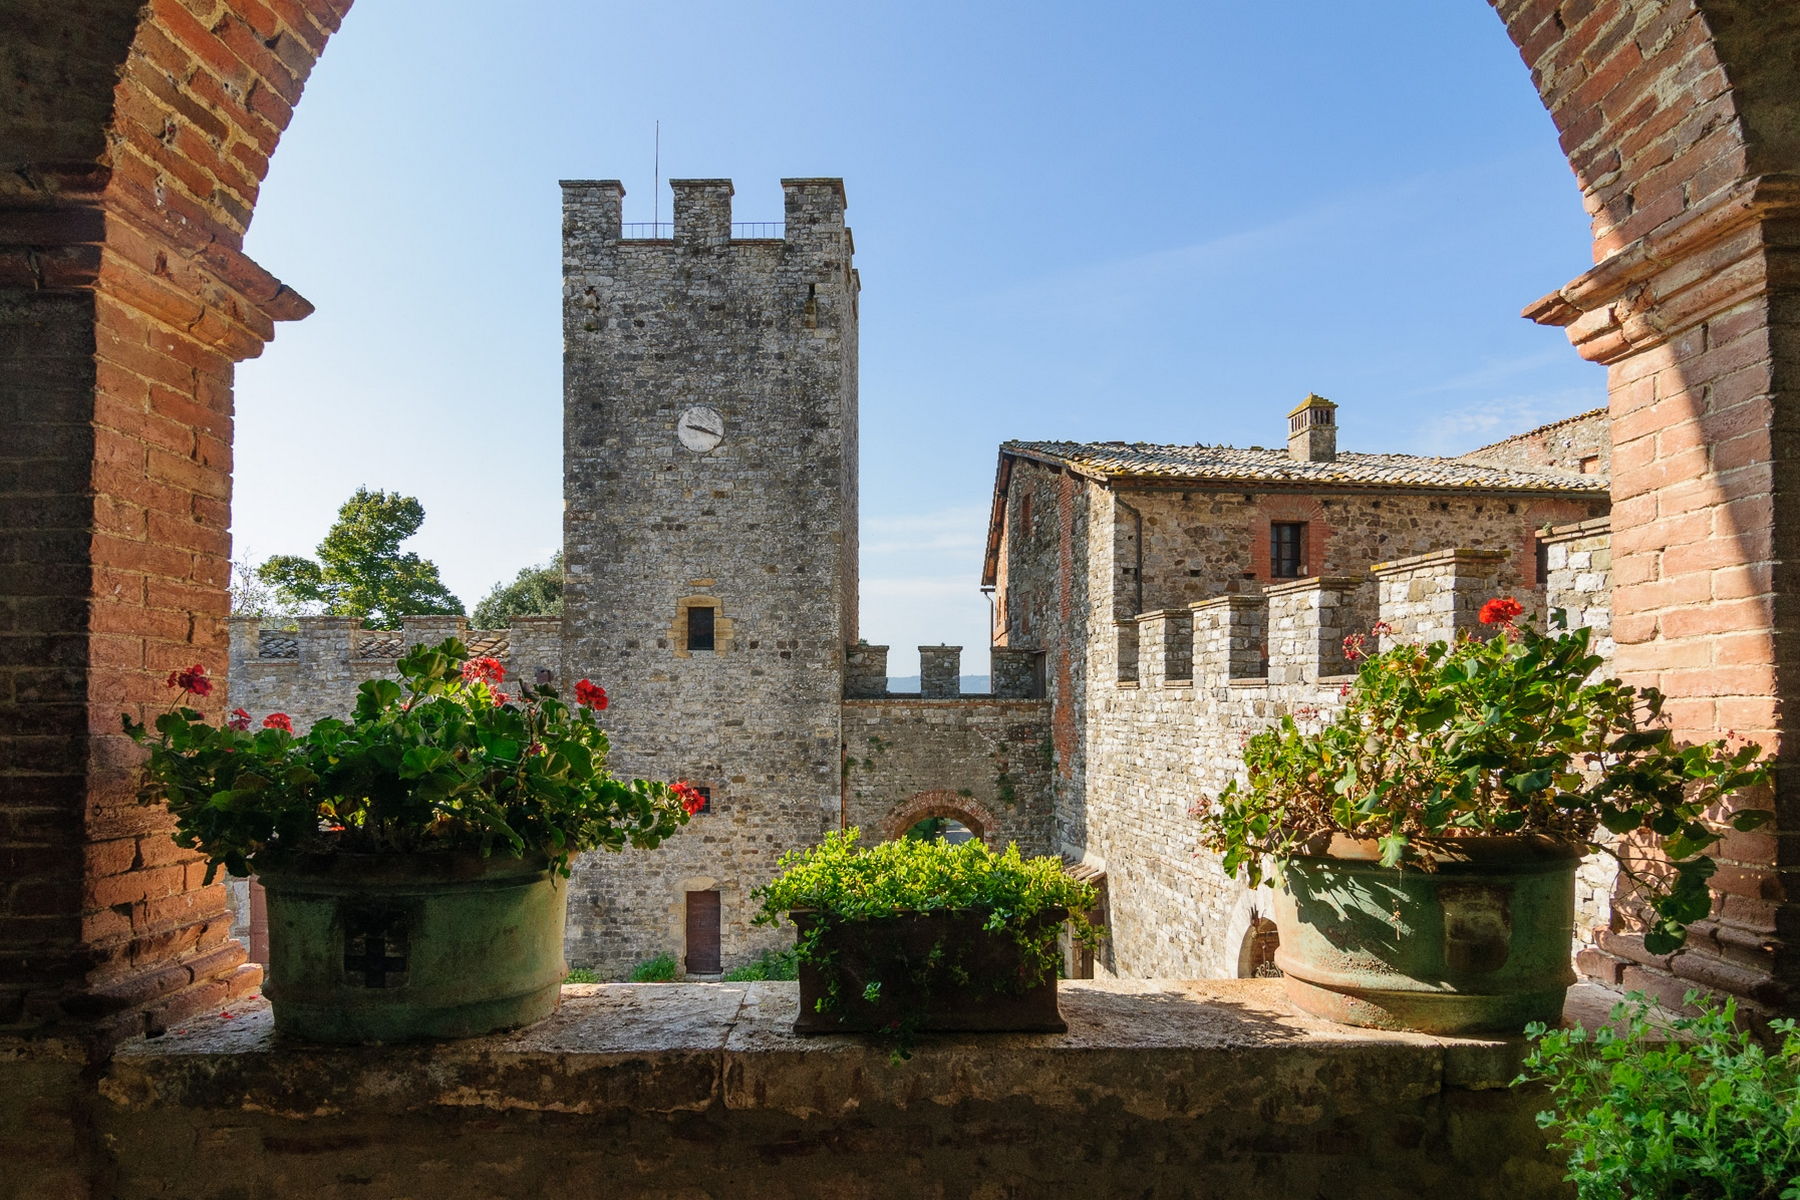 Additional photo for property listing at Glamorous Medieval Castle near Siena  Siena, Siena 53011 Italien